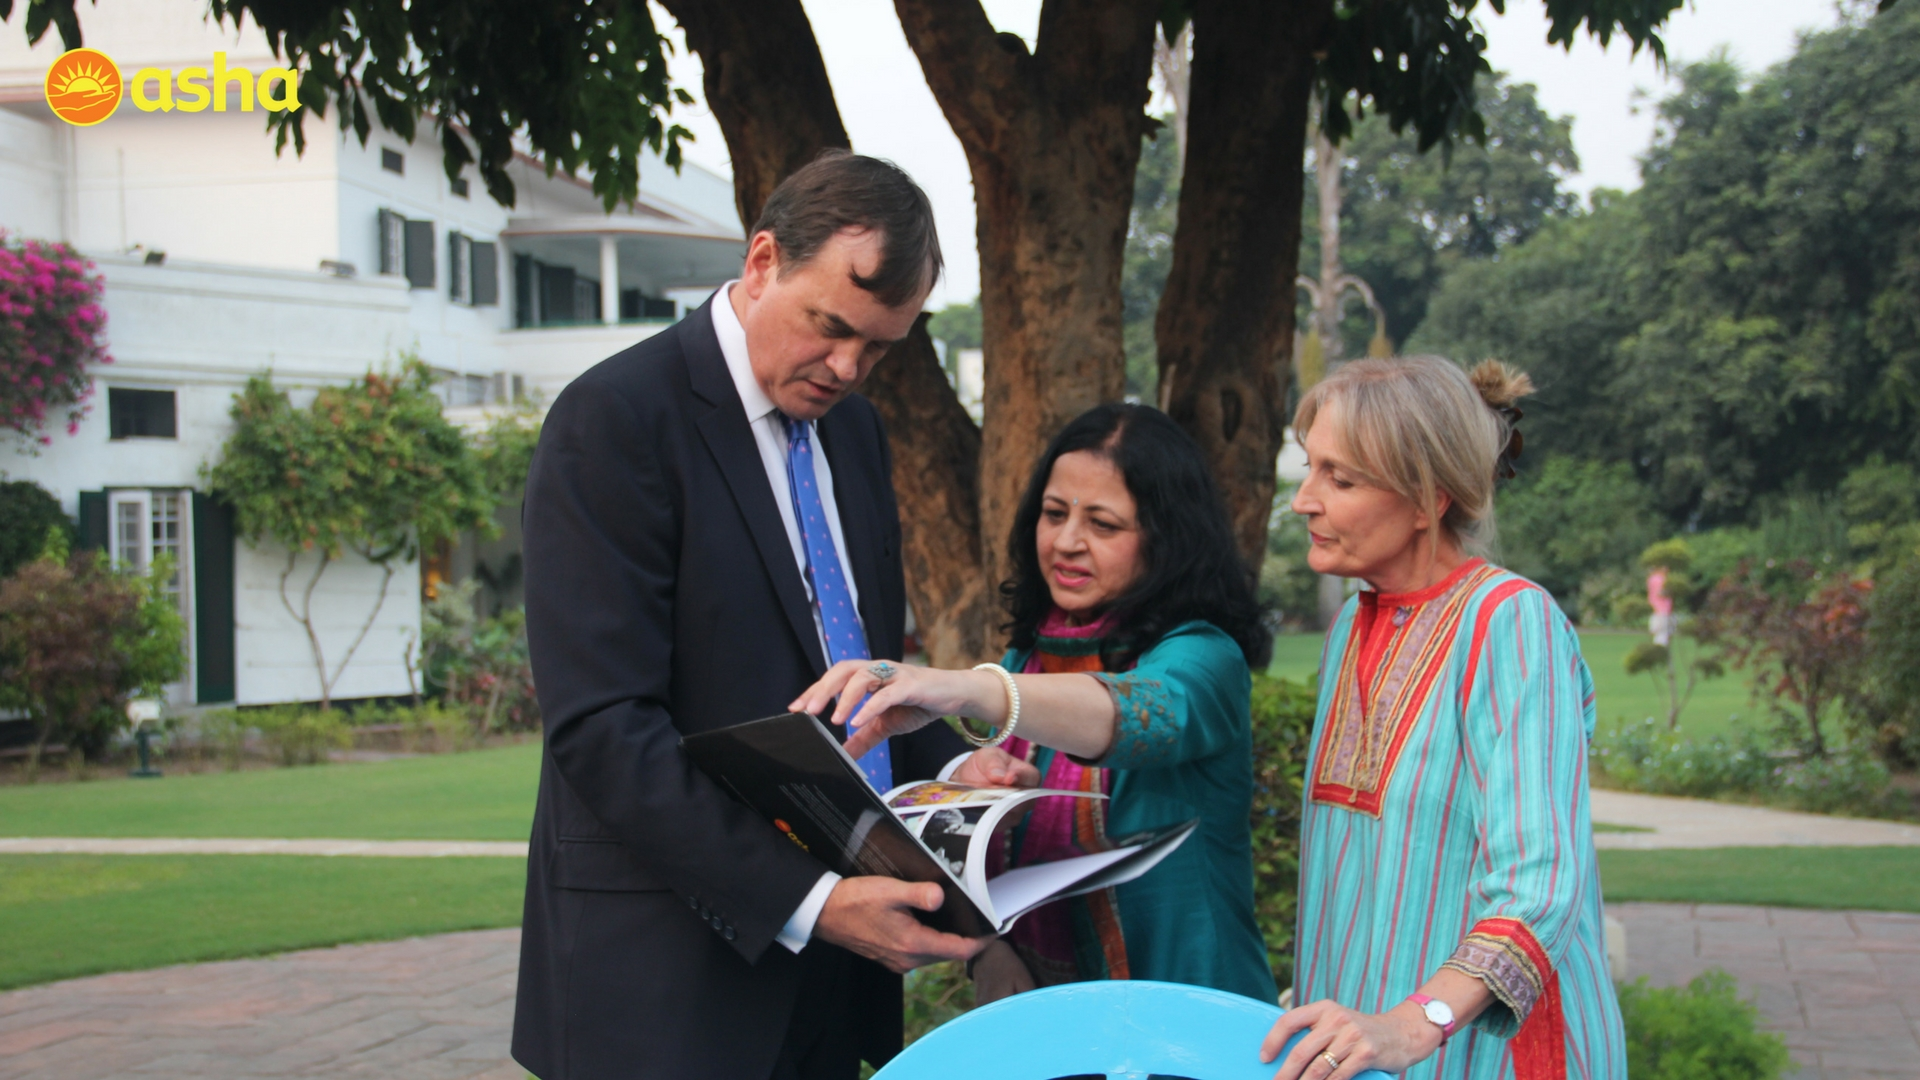 Dr. Kiran showing of Asha's work to the Honourable High Commissioner Sir Dominic Asquith KCMG and his wife, Lady Louise Asquith.